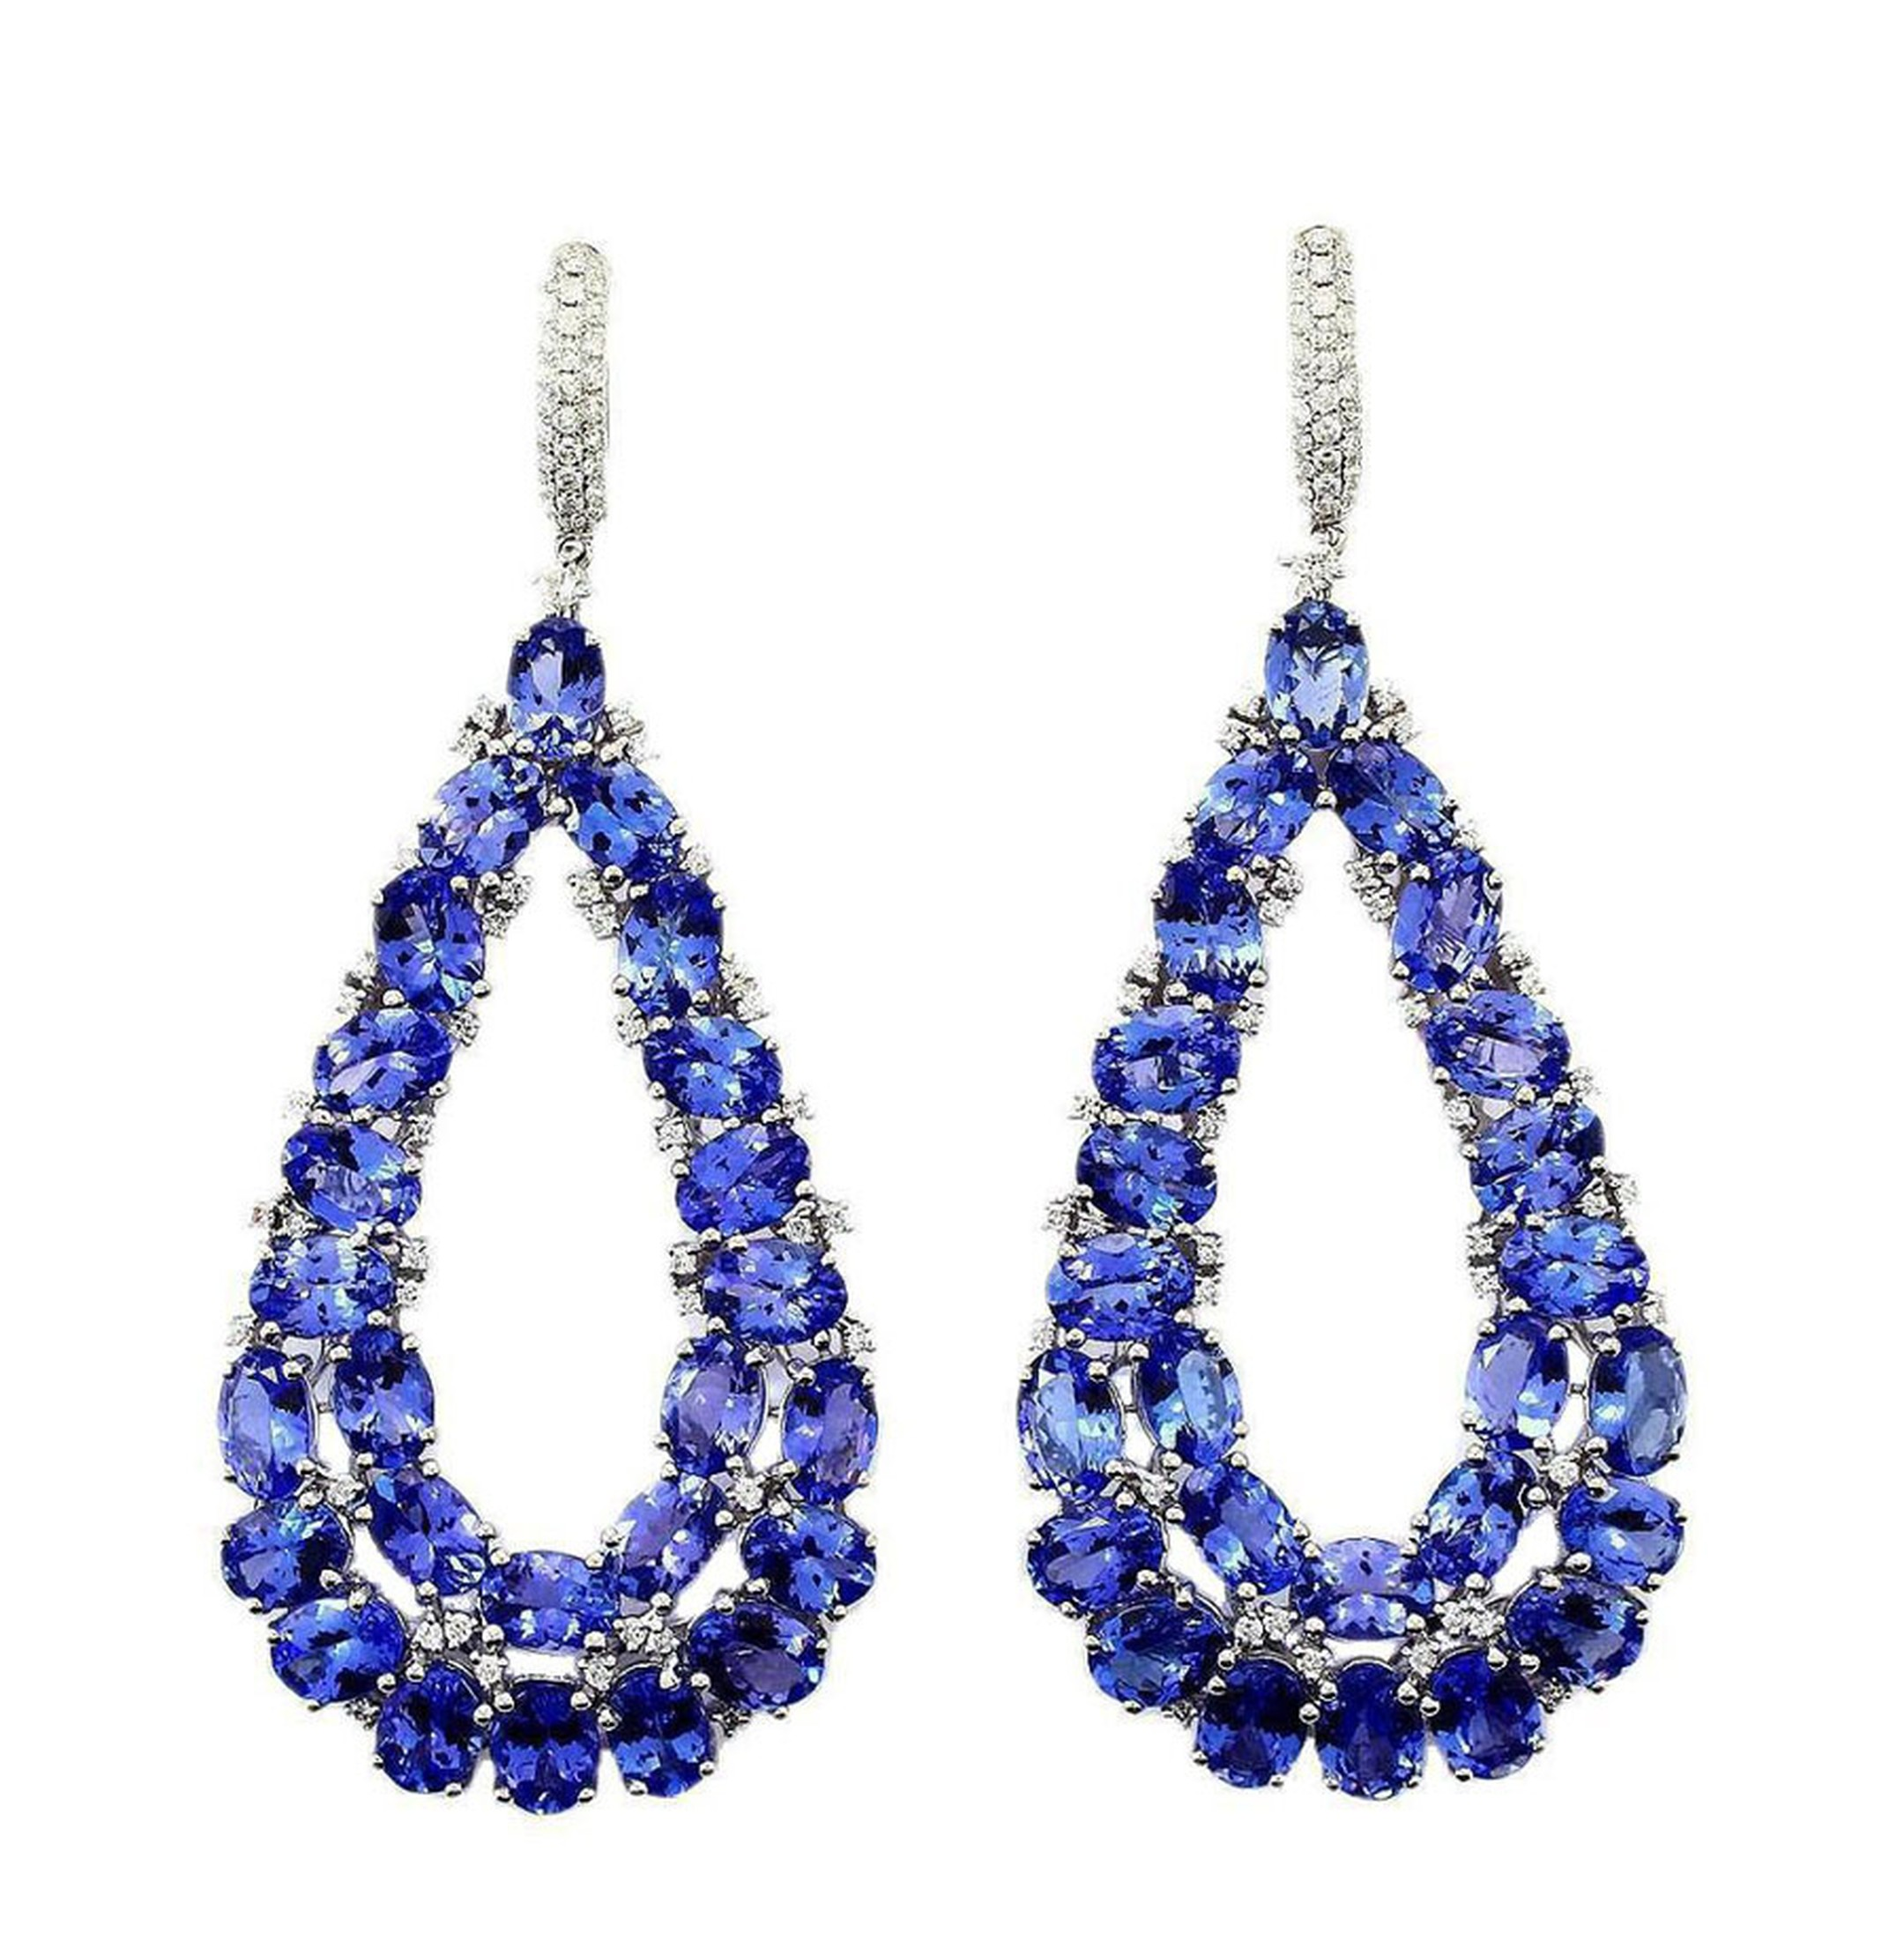 TanzaniteOne Empress earrings showcasing over 50 blue-violet tanzanite stones.